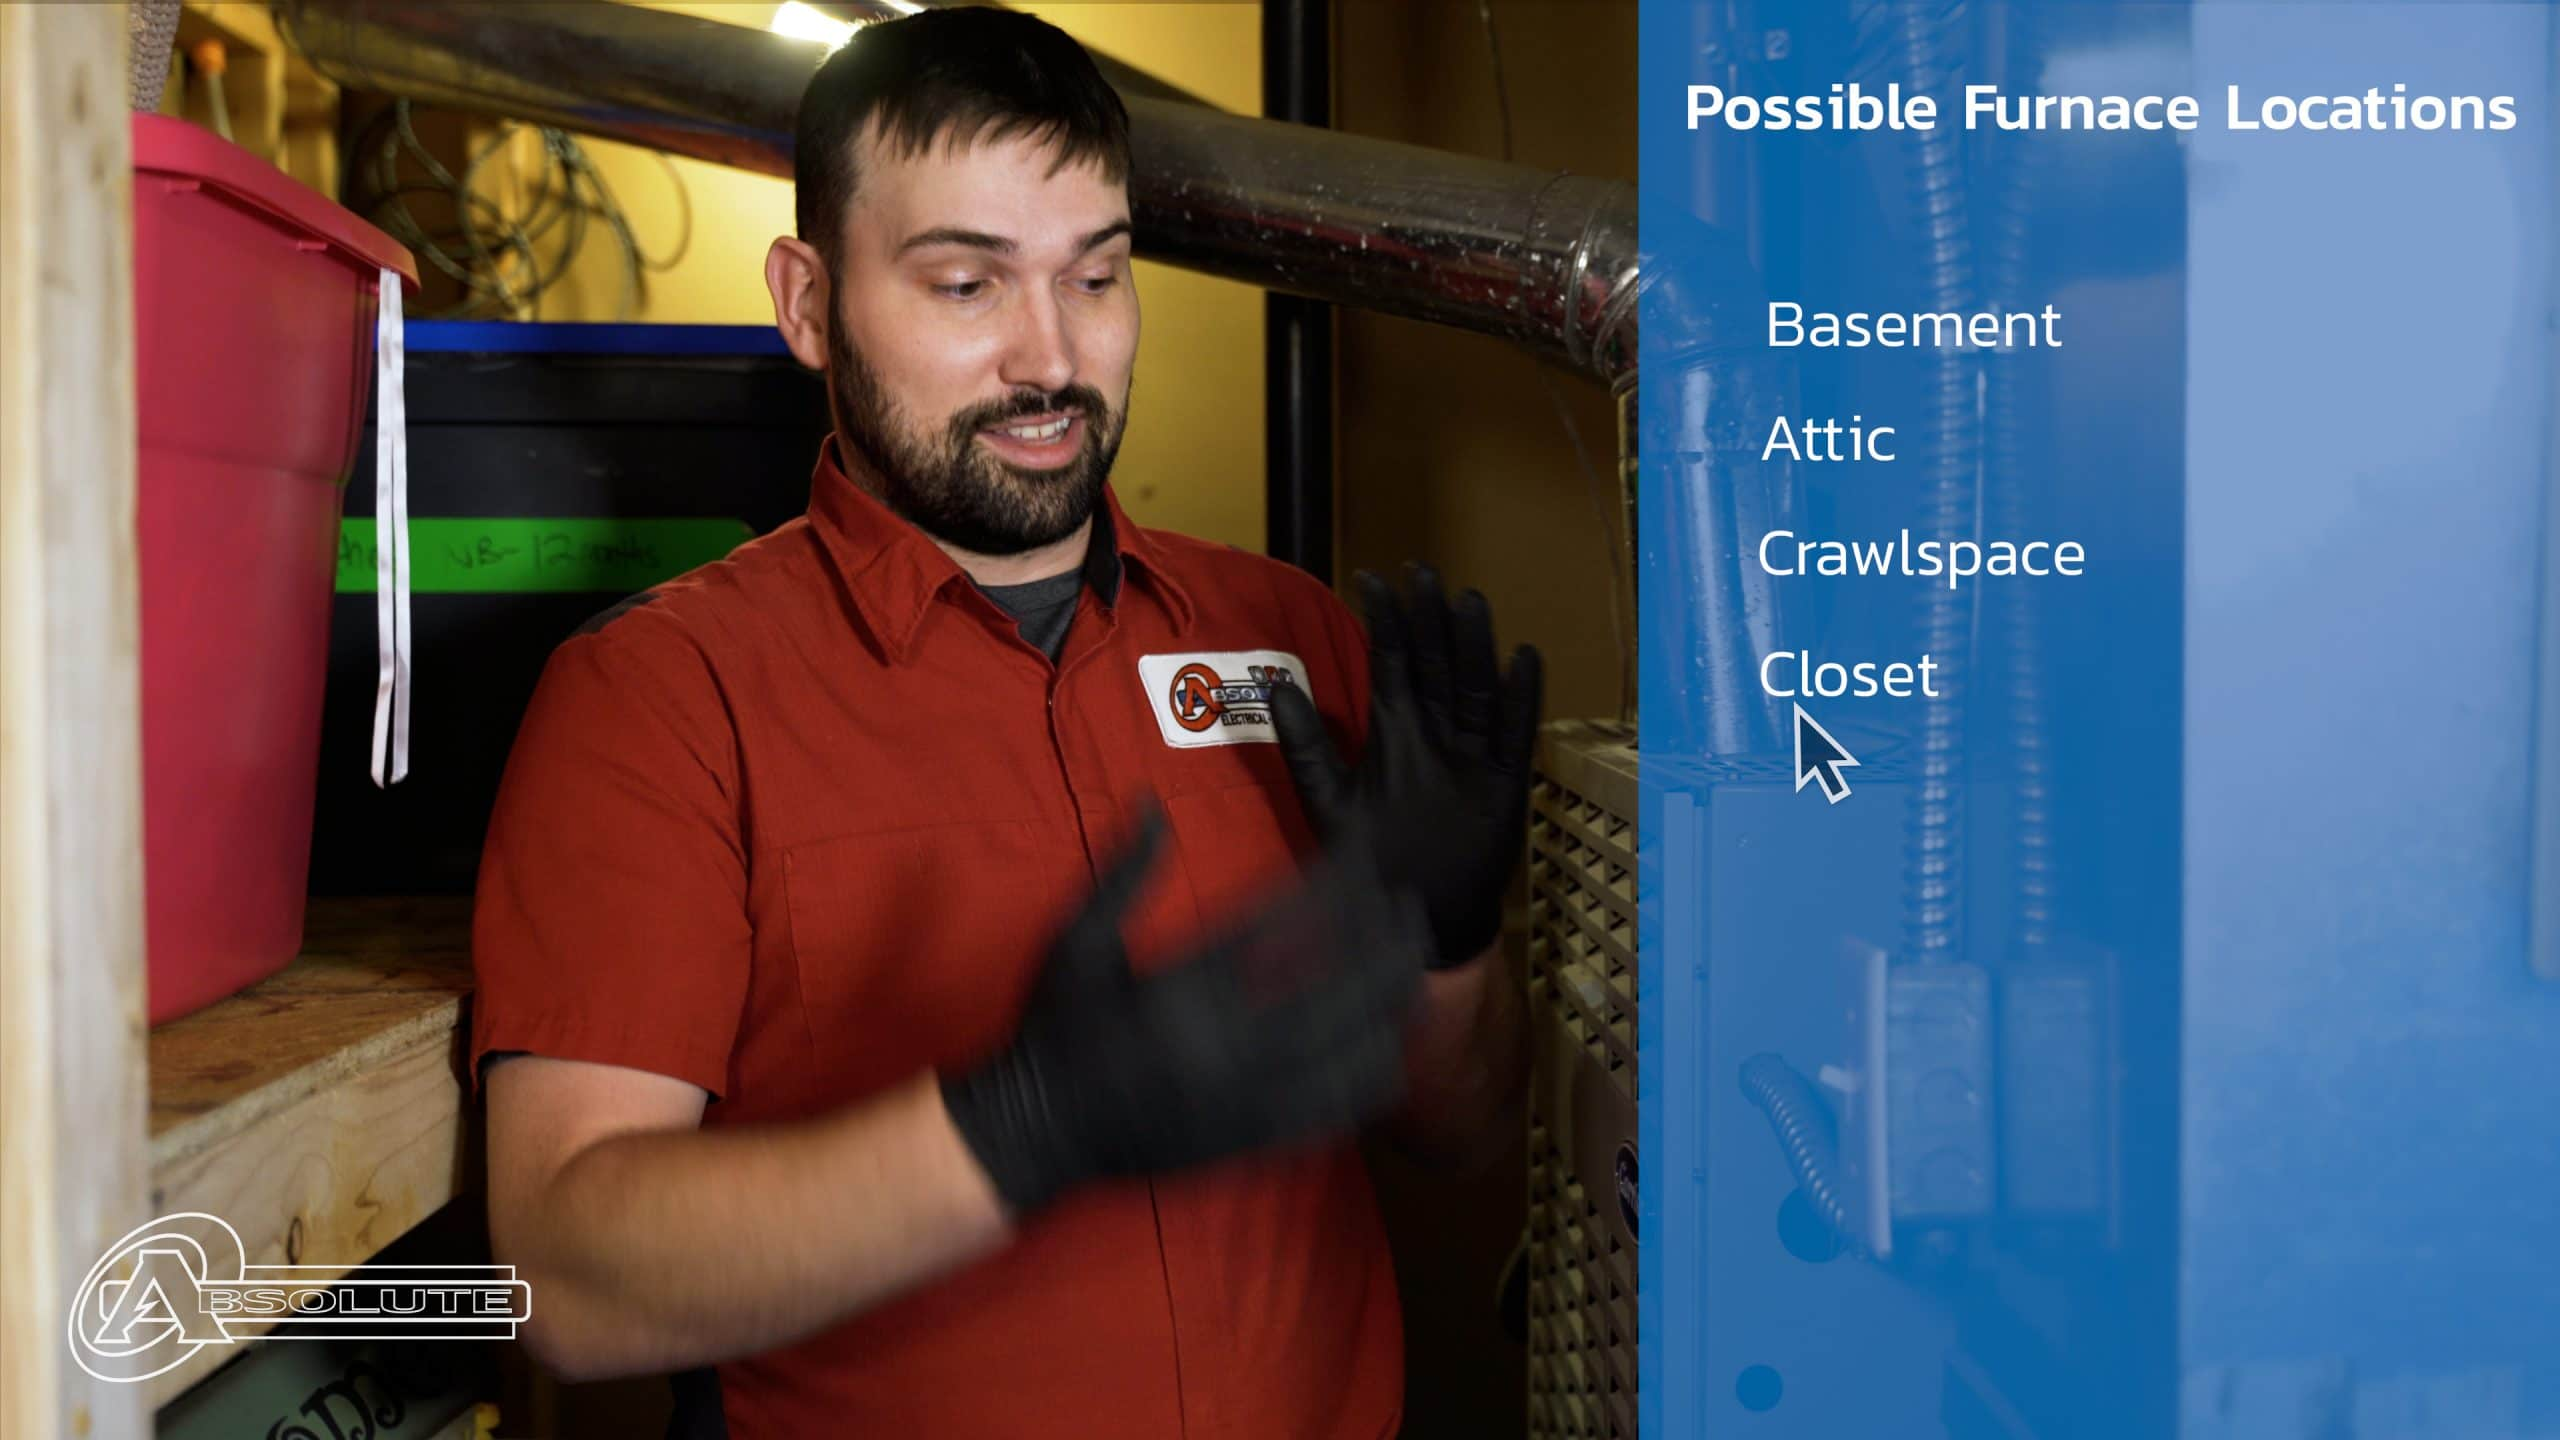 Possible Furnace Locations In Your Home - Change Your HVAC Air Filter